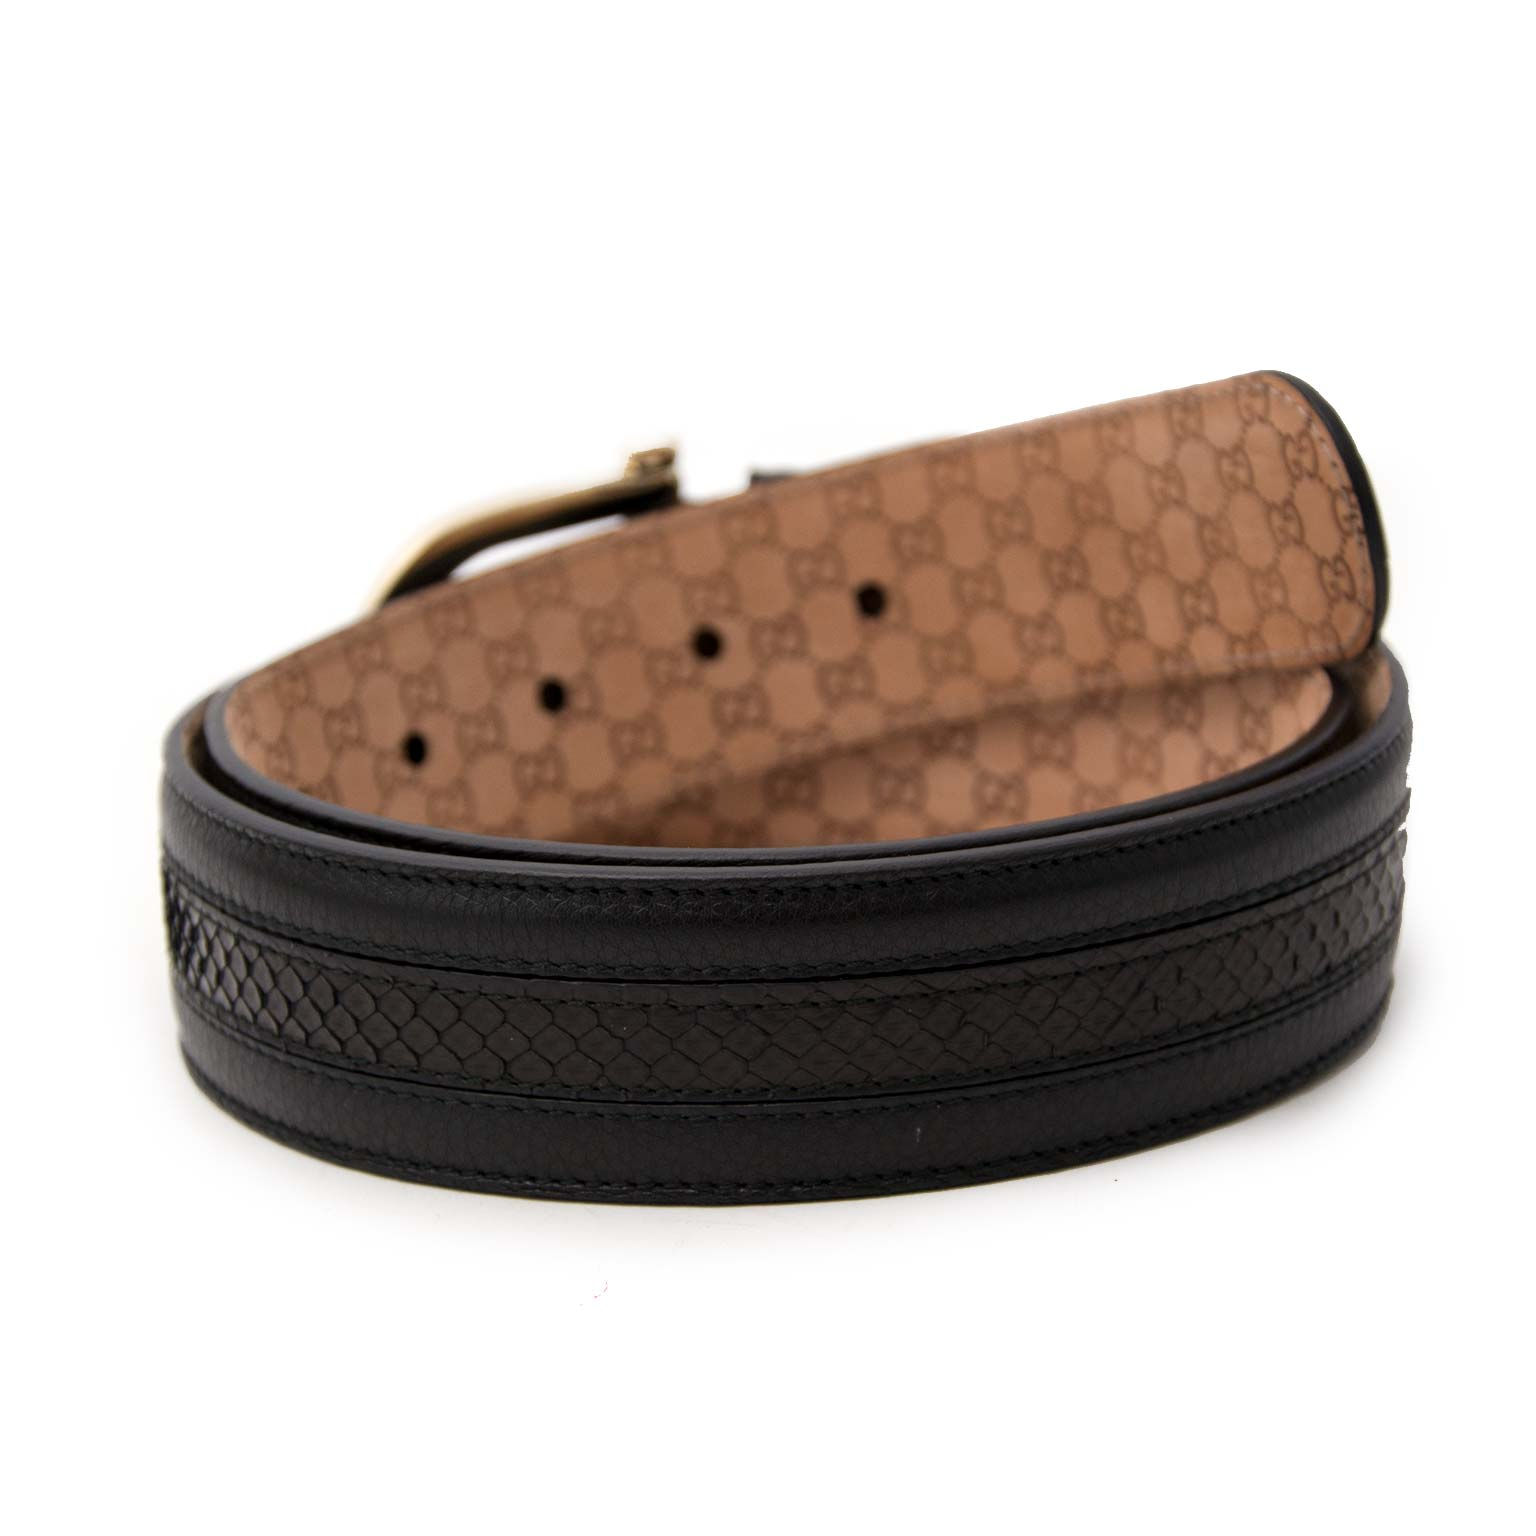 Gucci Black Leather Belt achetez secur en ligne